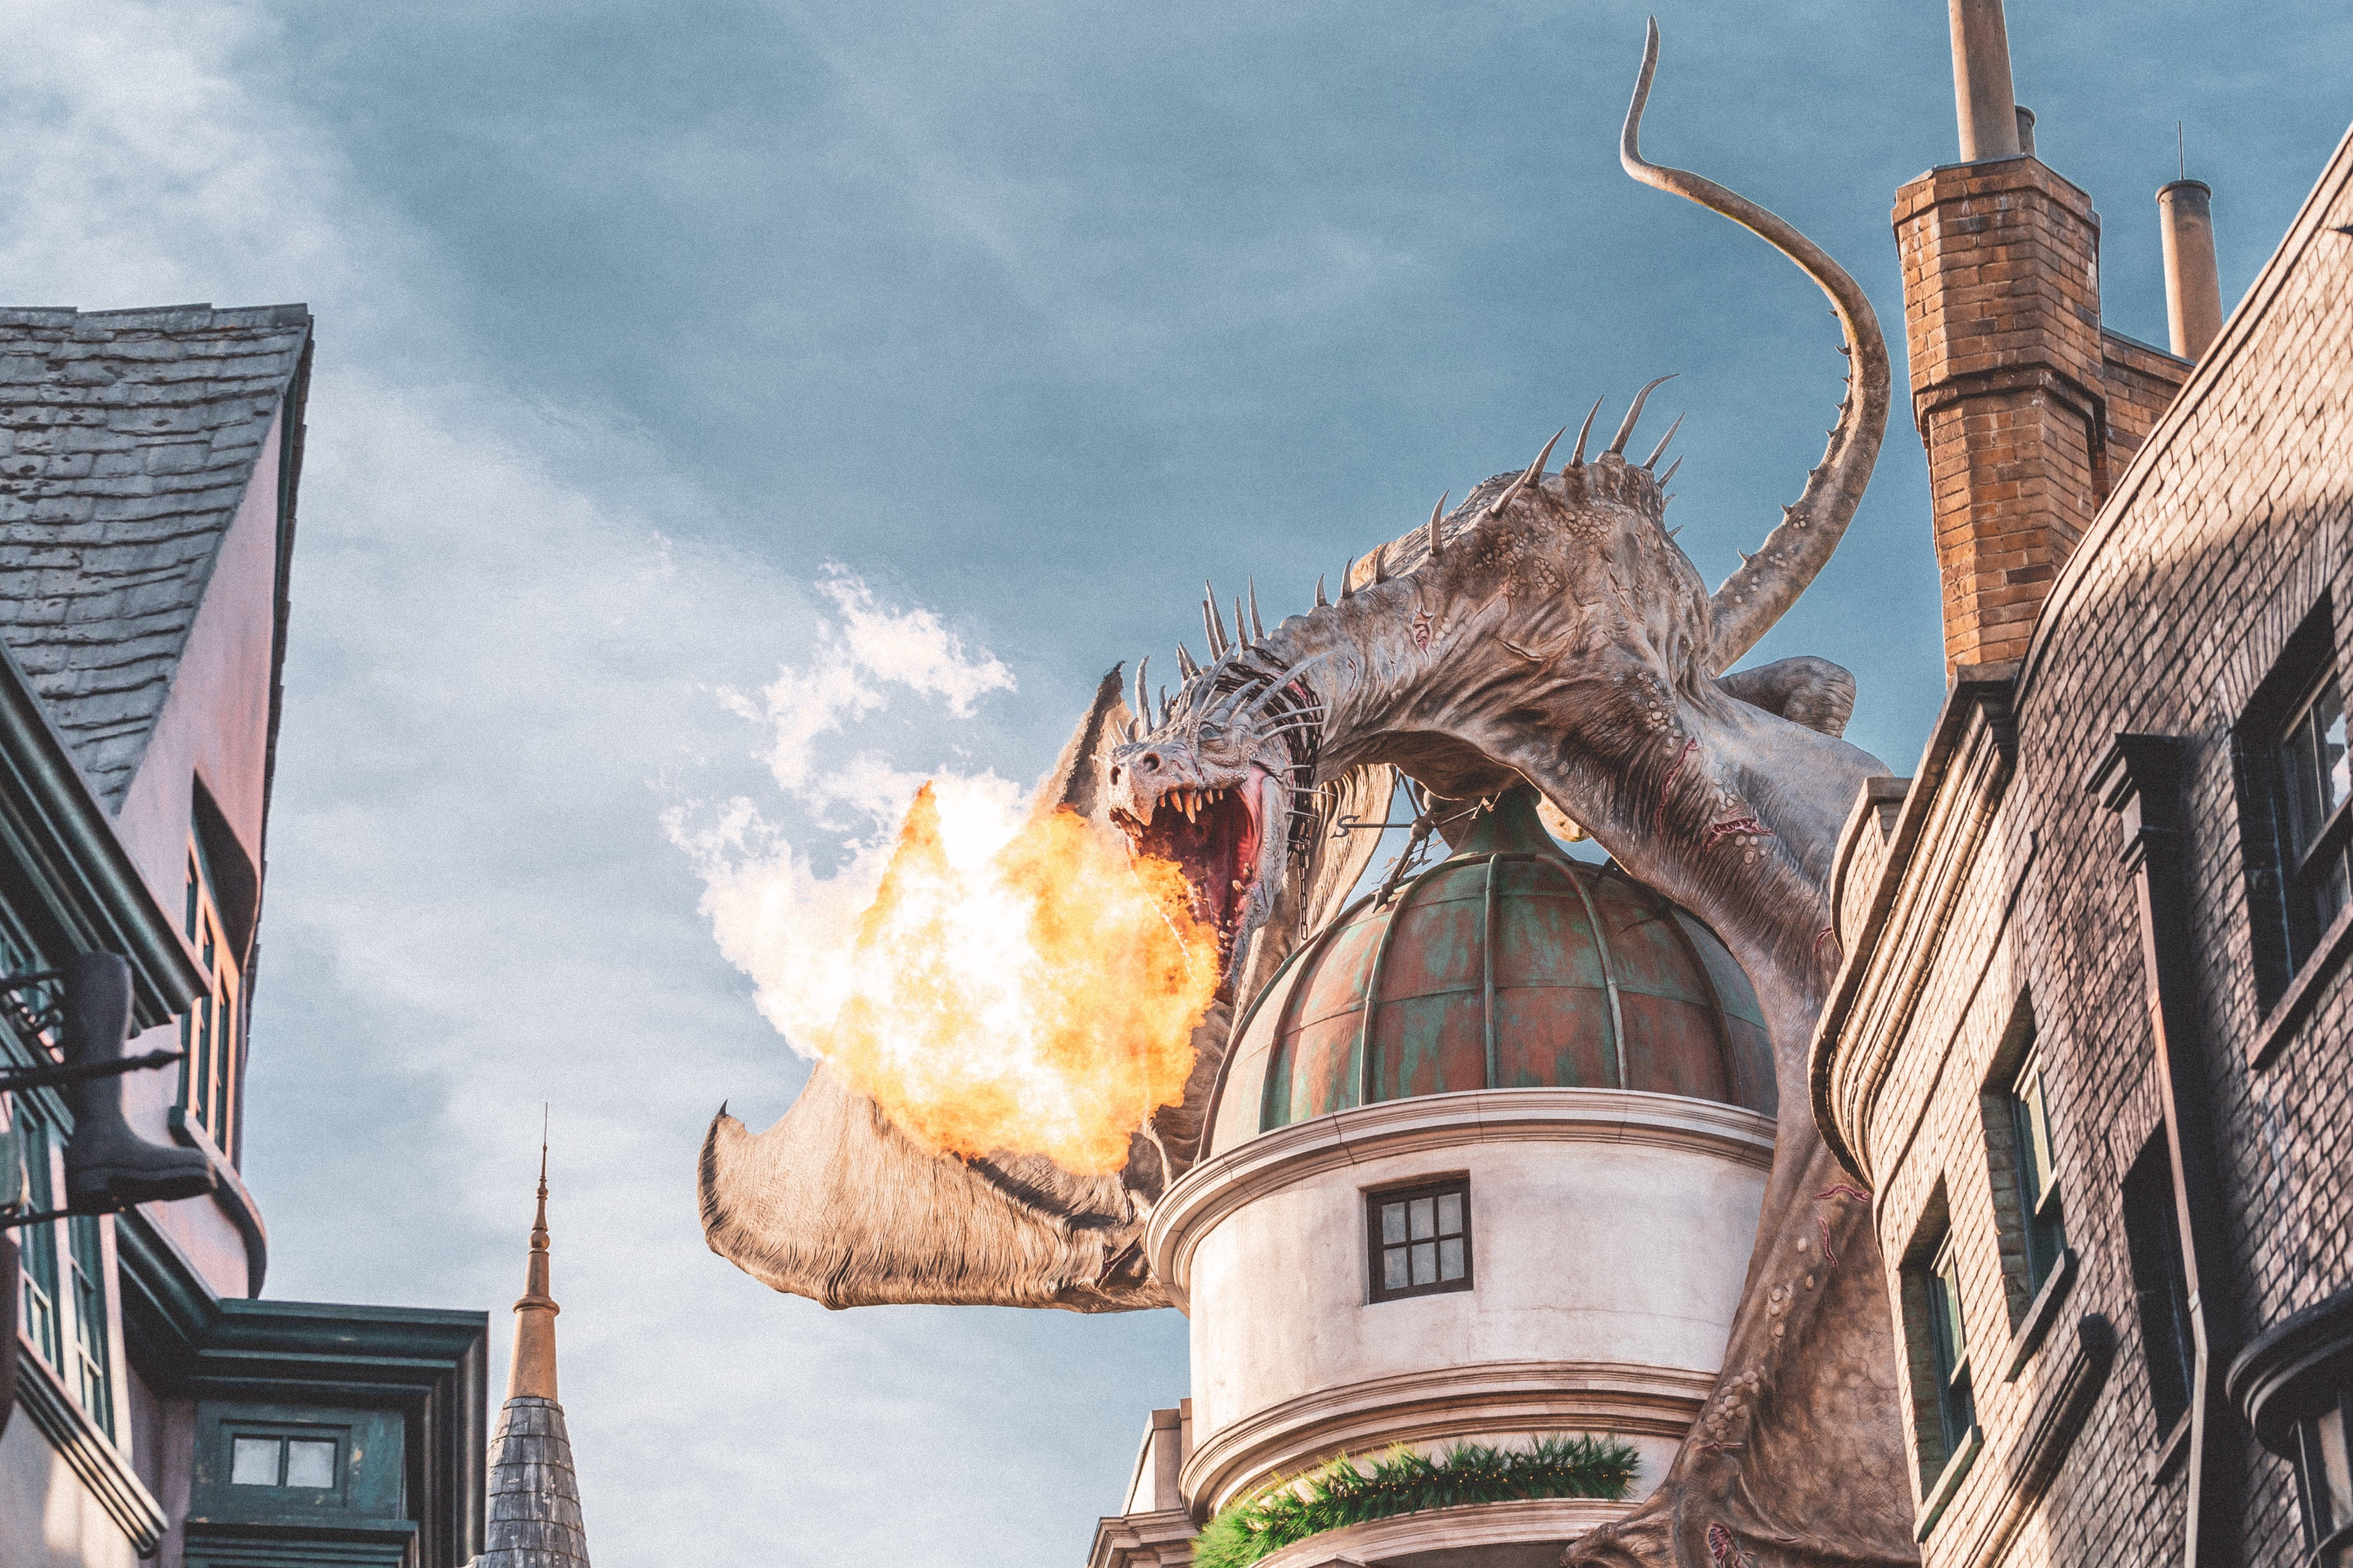 A dragon on top of a domed building breathing fire across a village